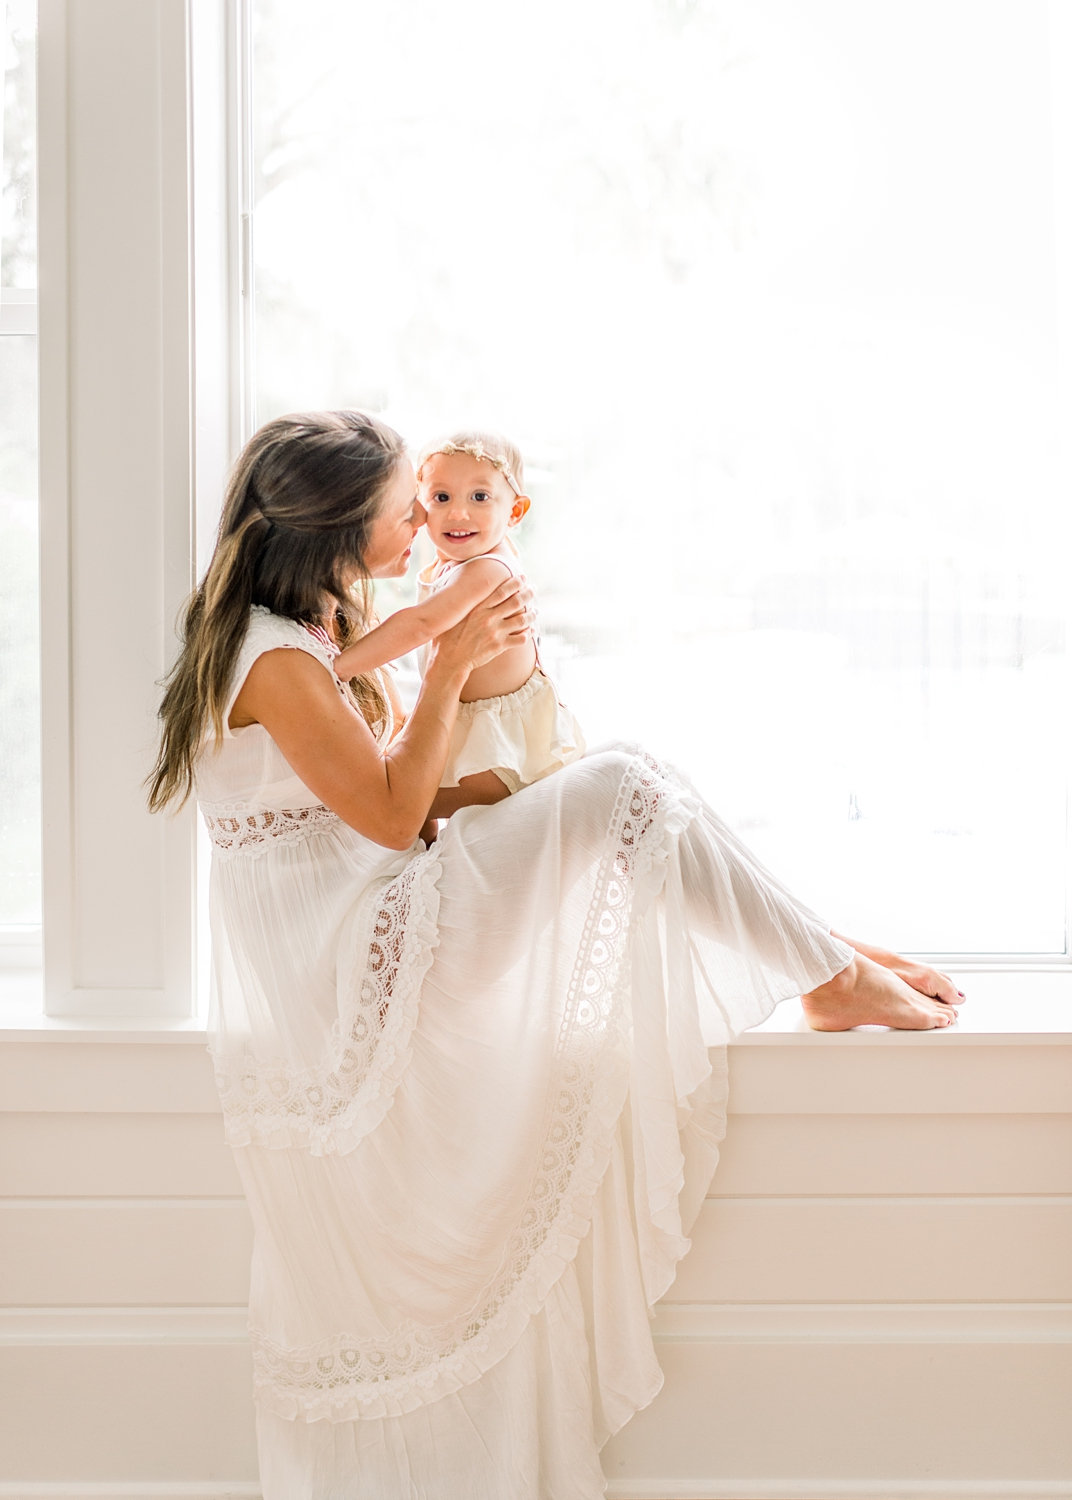 sheer white dress for motherhood portraits, mother and daughter, window portrait, Rya Duncklee Photography